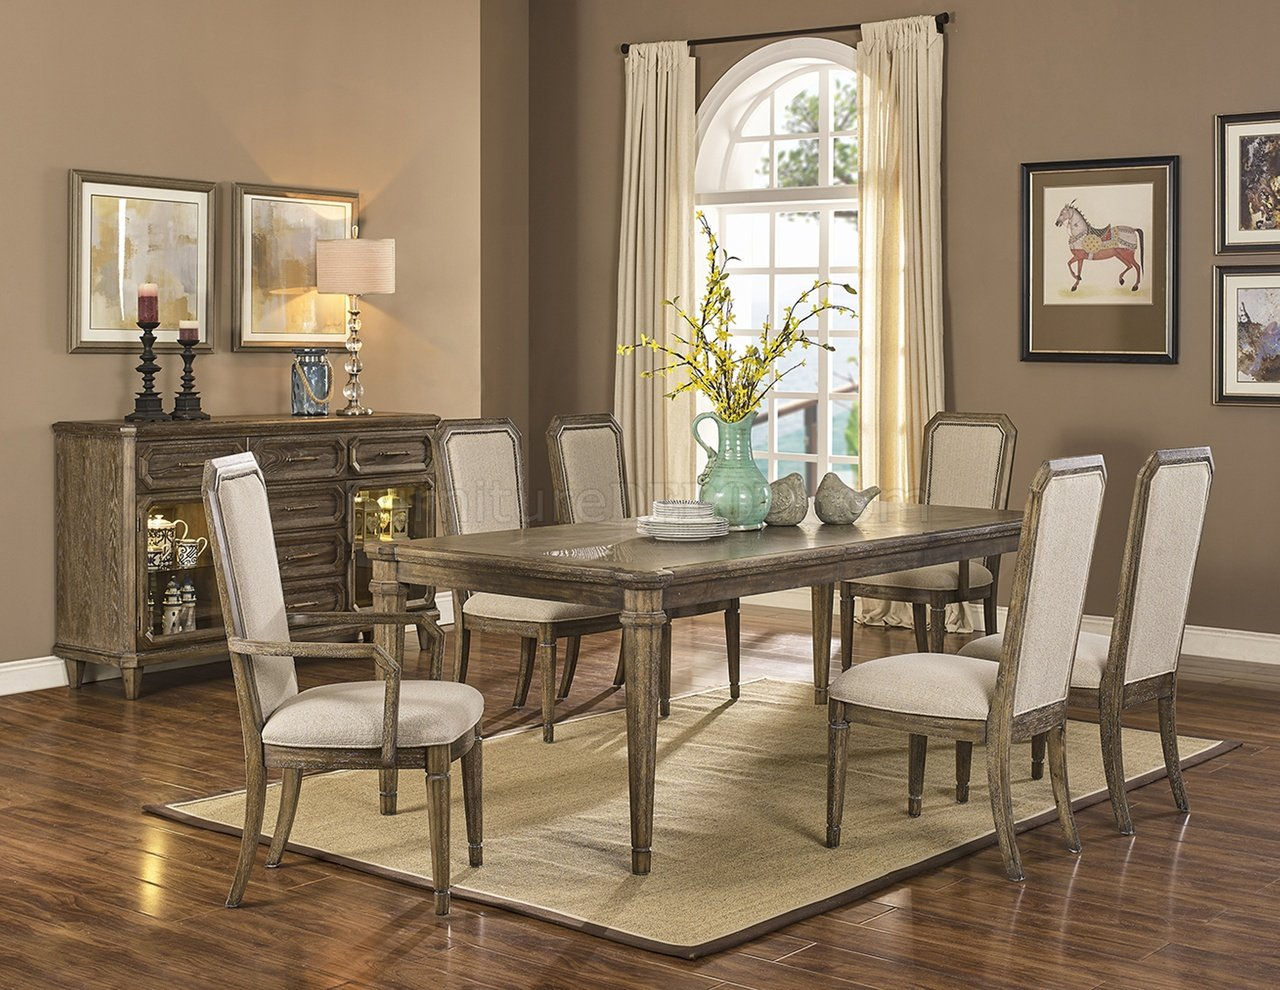 Avondale Dining Set 5Pc In Vinicolencfurniture W/options Throughout Newest Avondale Dining Tables (View 19 of 25)